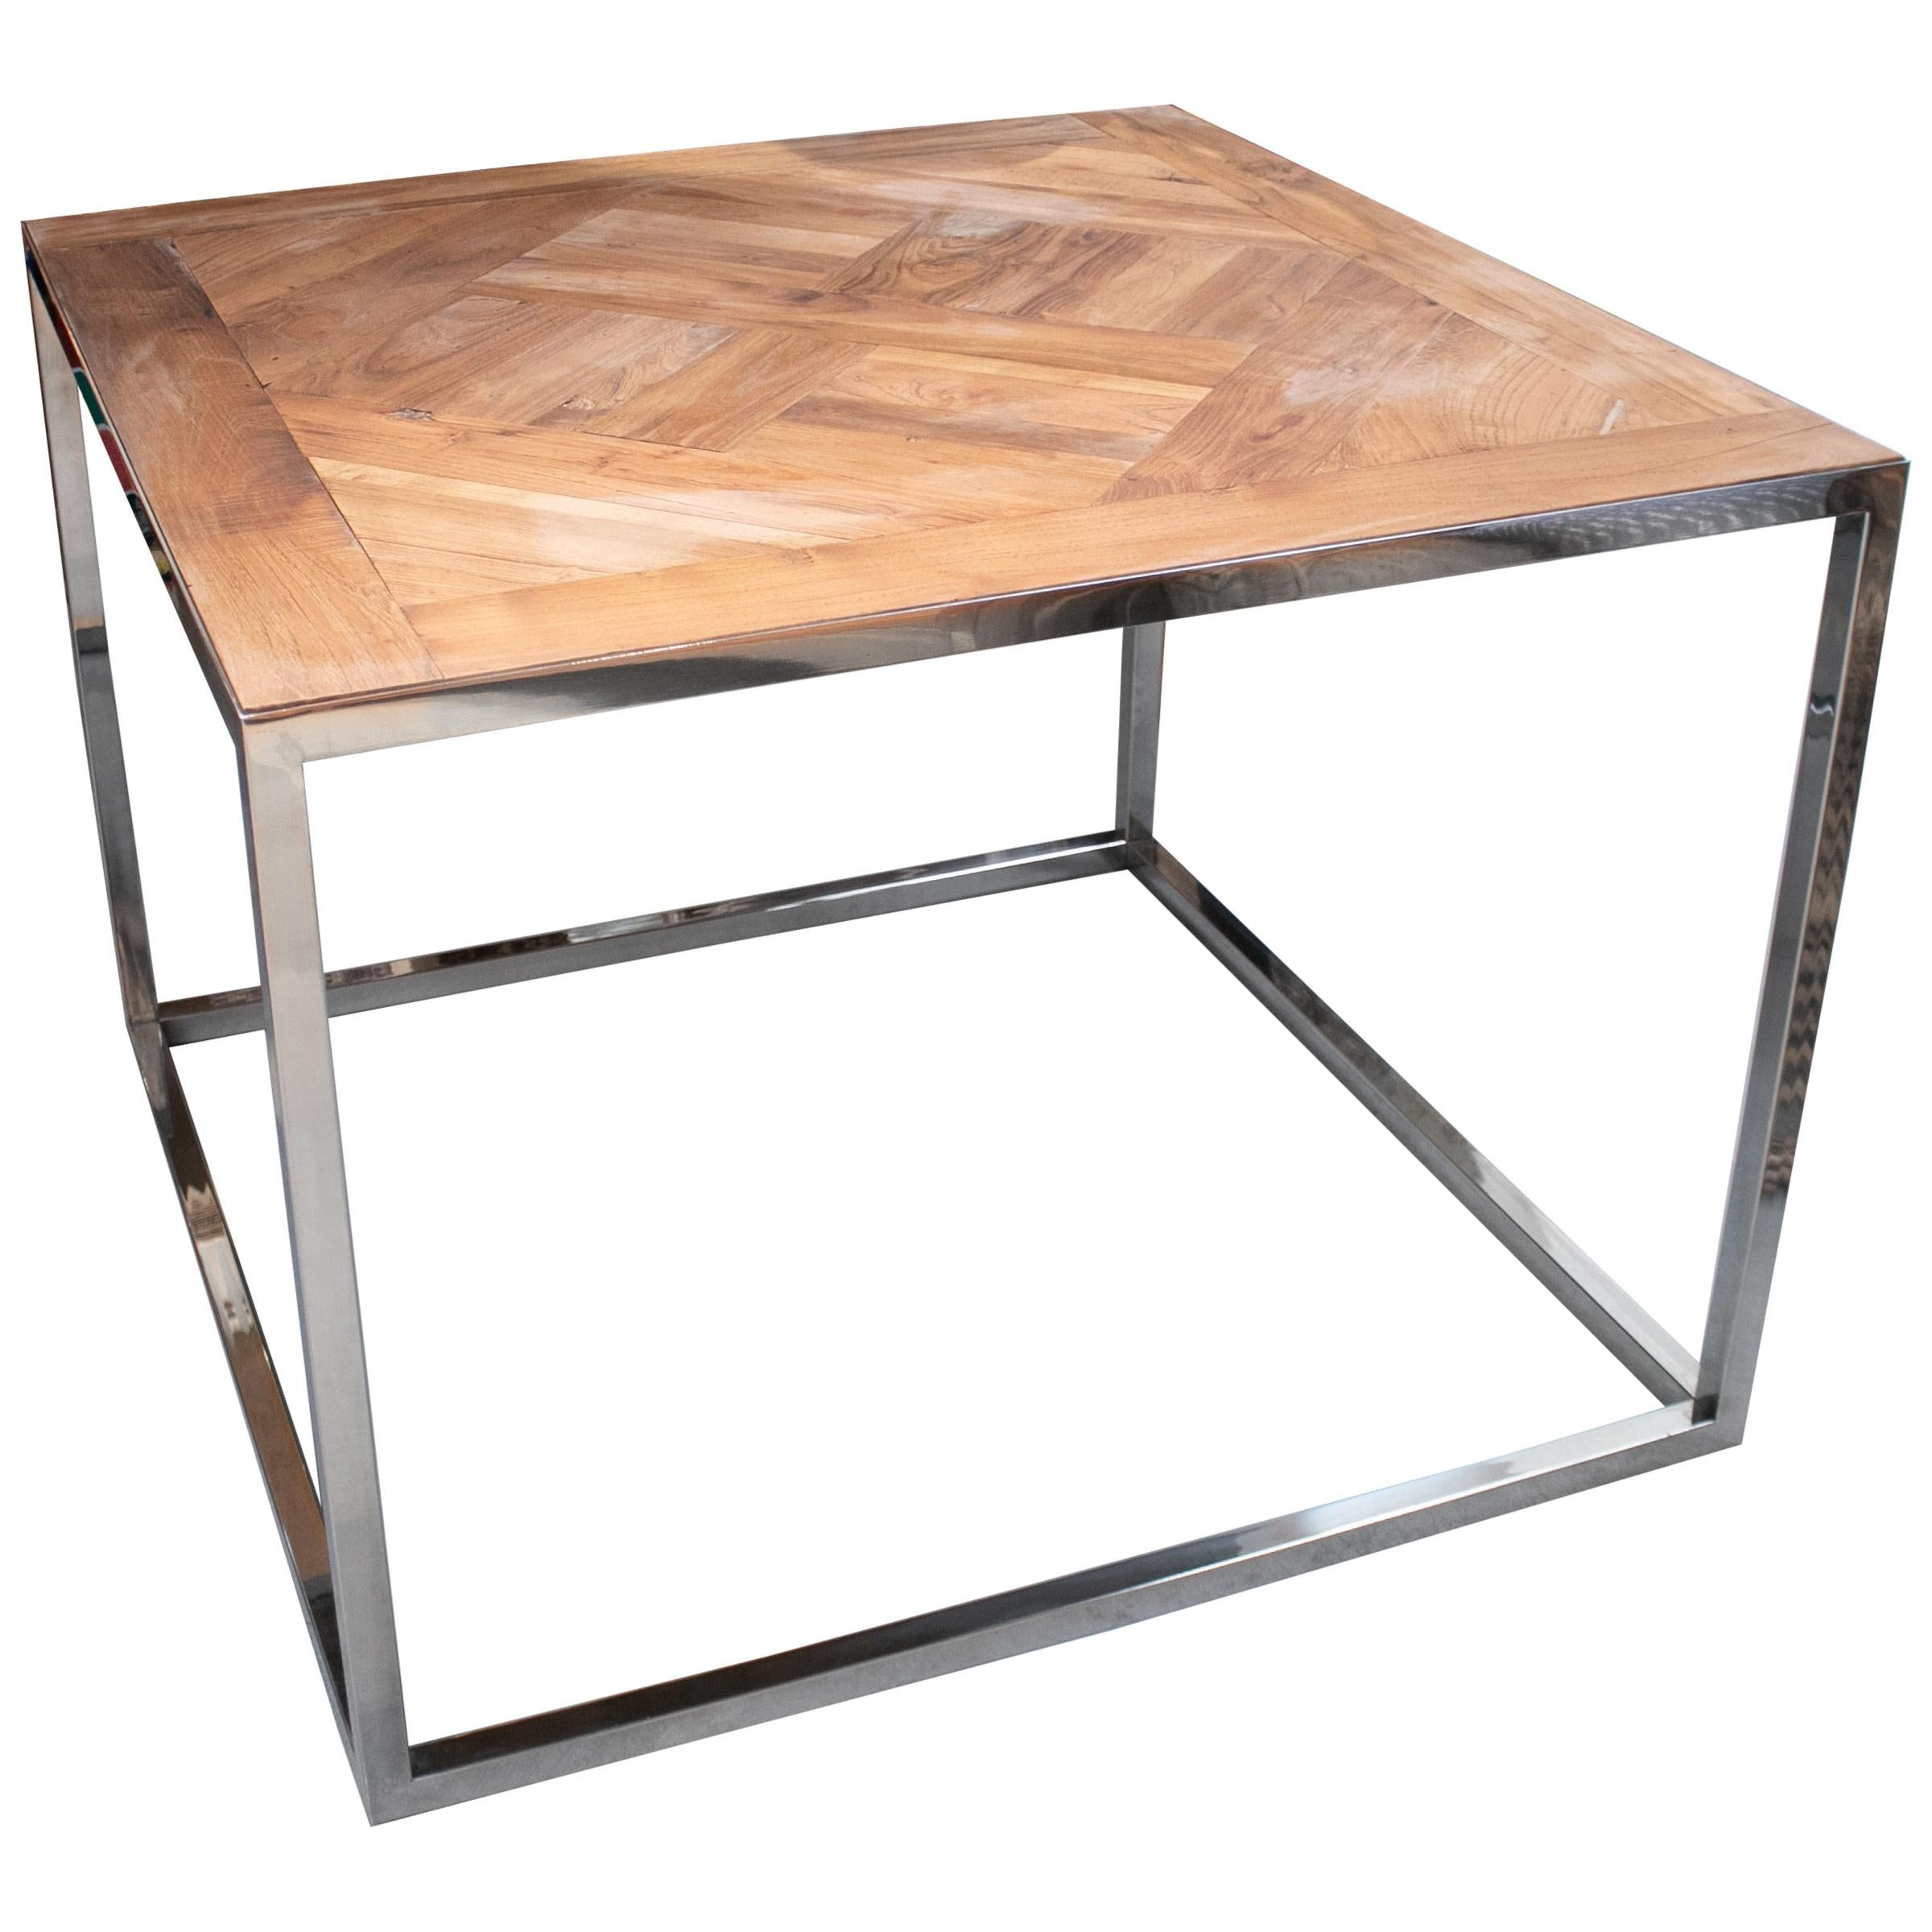 Square Steel Table with French Antique Oak Wooden Top